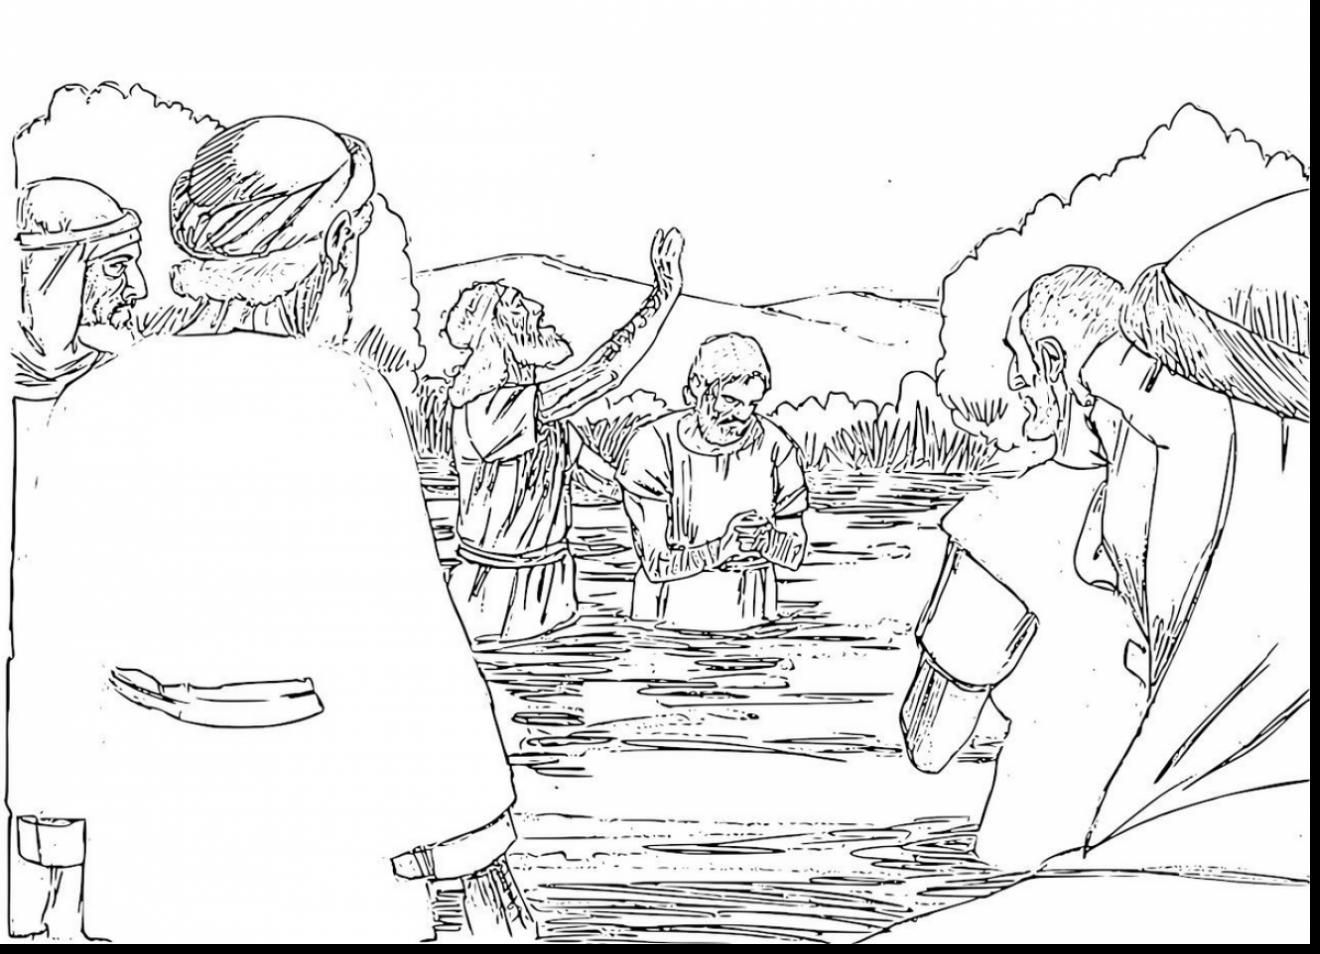 jesus getting baptized coloring page new coloring pages jesus baptism free coloring pages getting page coloring jesus baptized